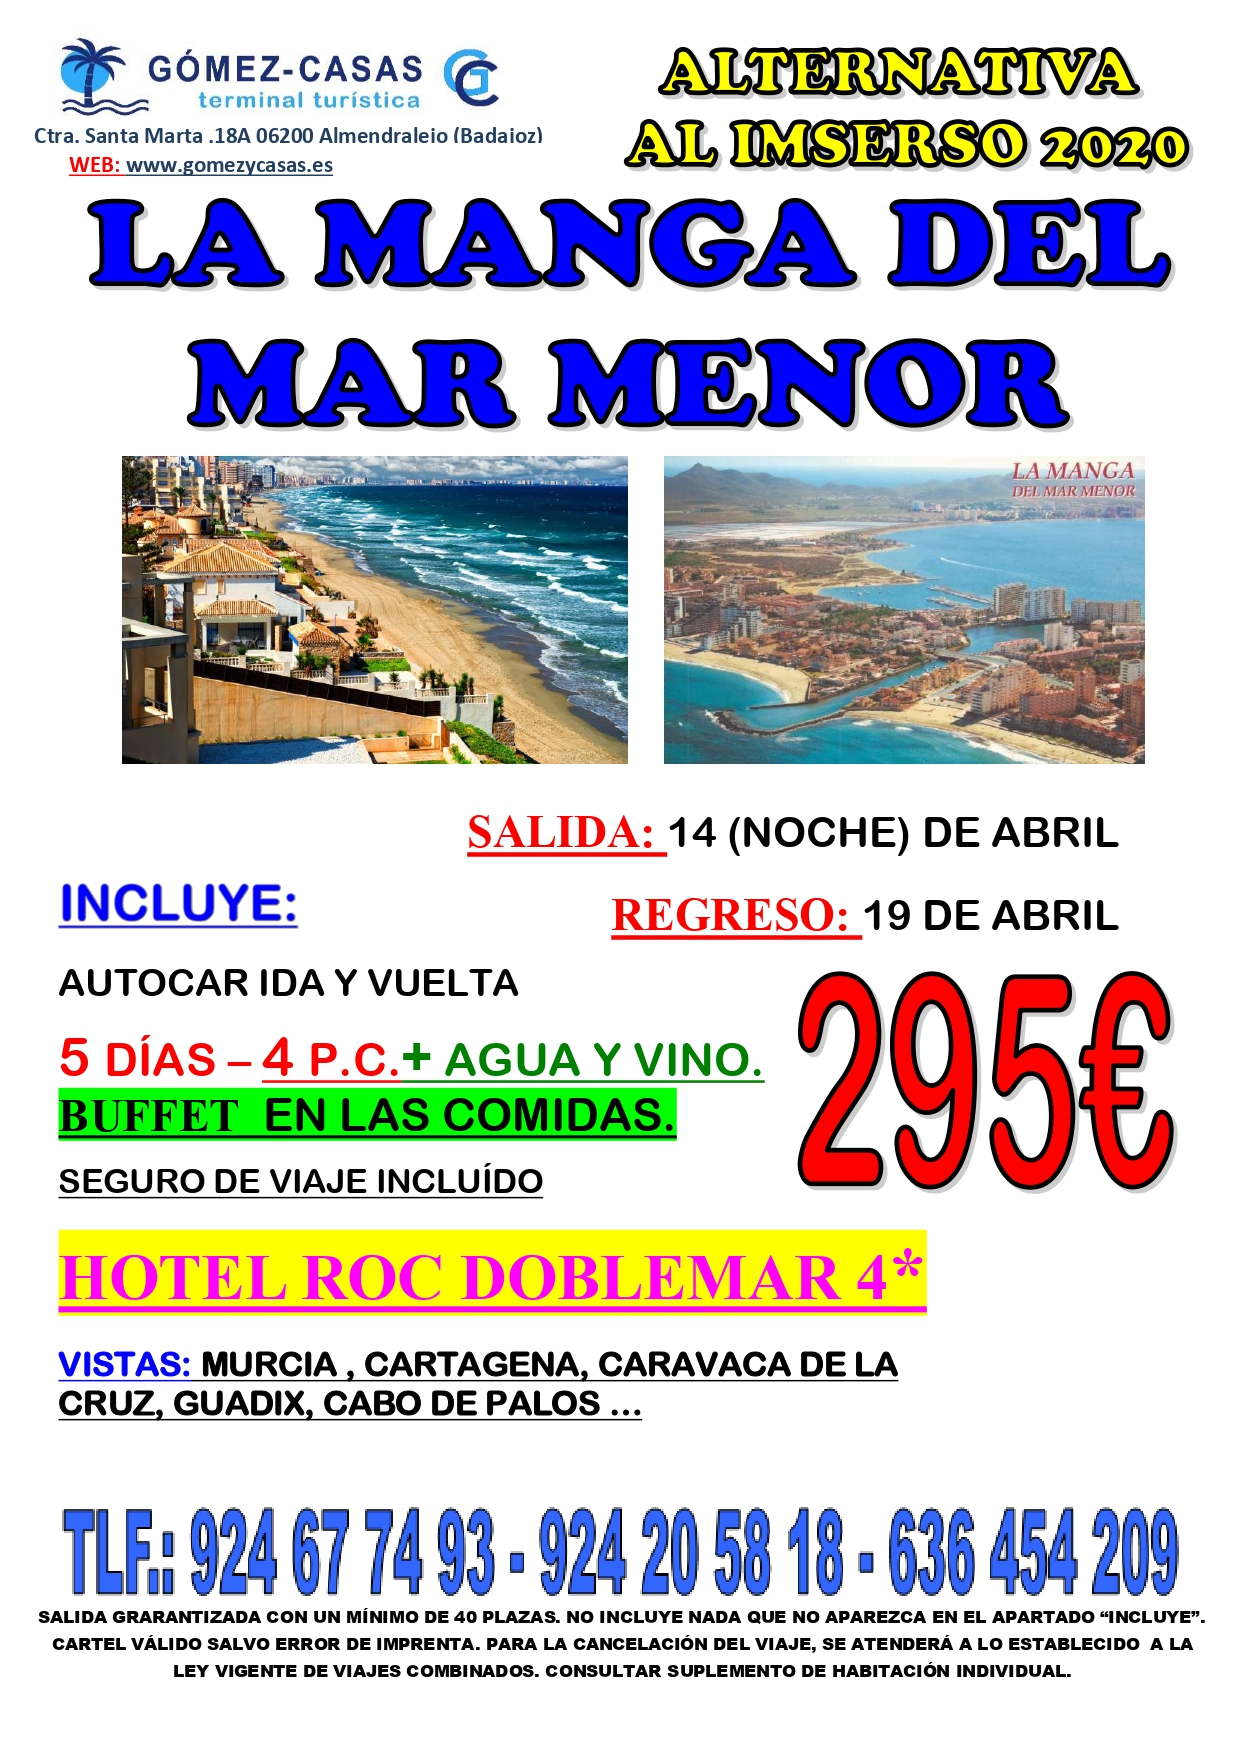 Alternativa al imserso. La Manga del Mar Menor. Del 14 (noche)-19 abril.